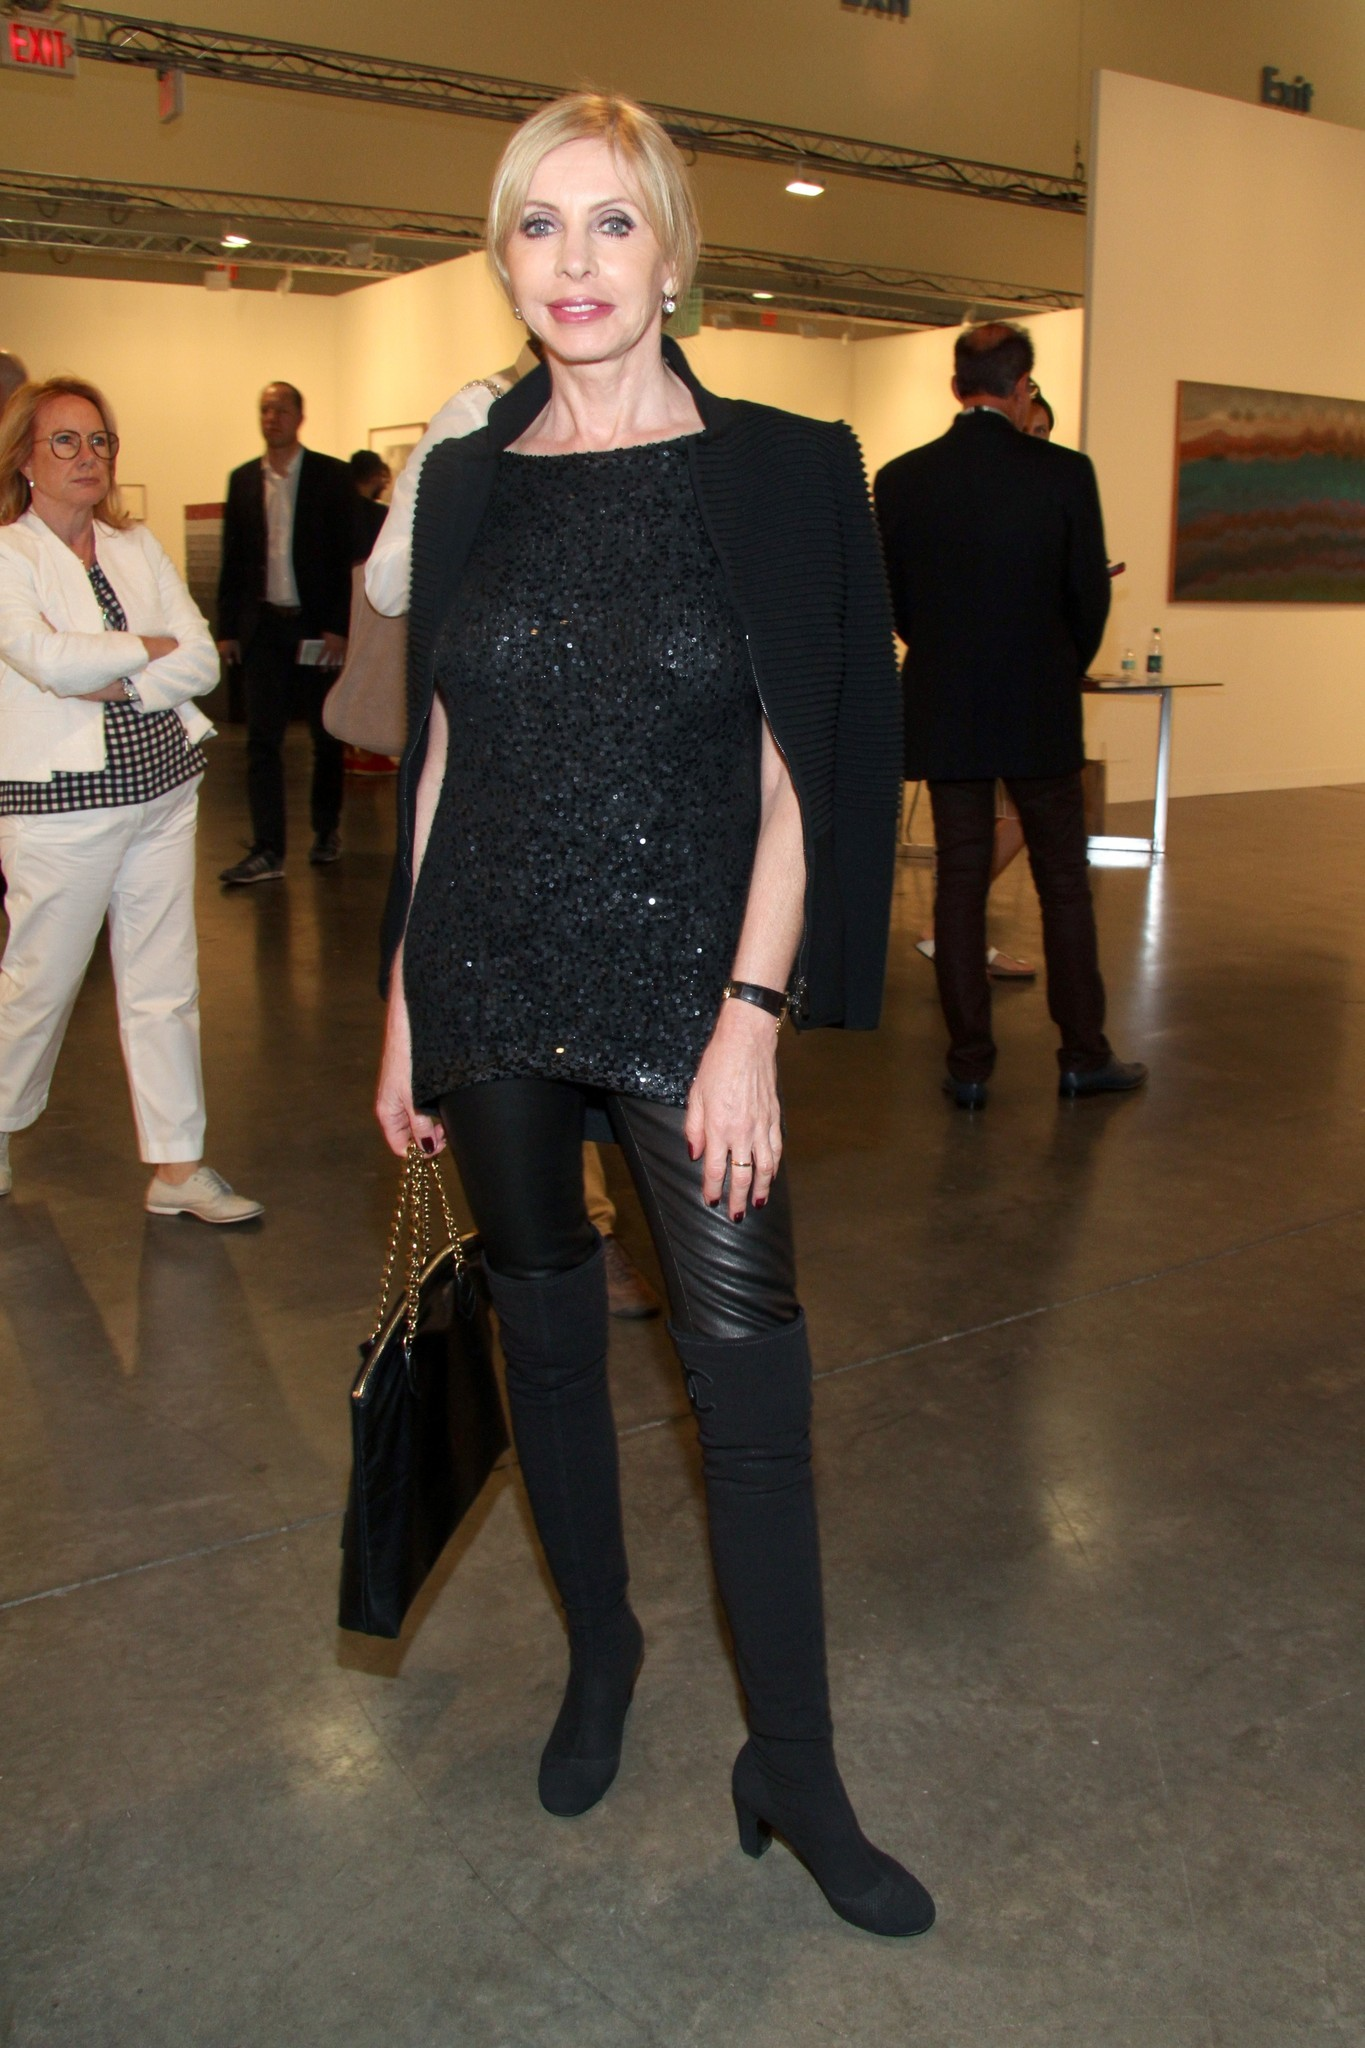 PHOTOS: Artists, celebs at Art Basel - Grazyna Kulczyk